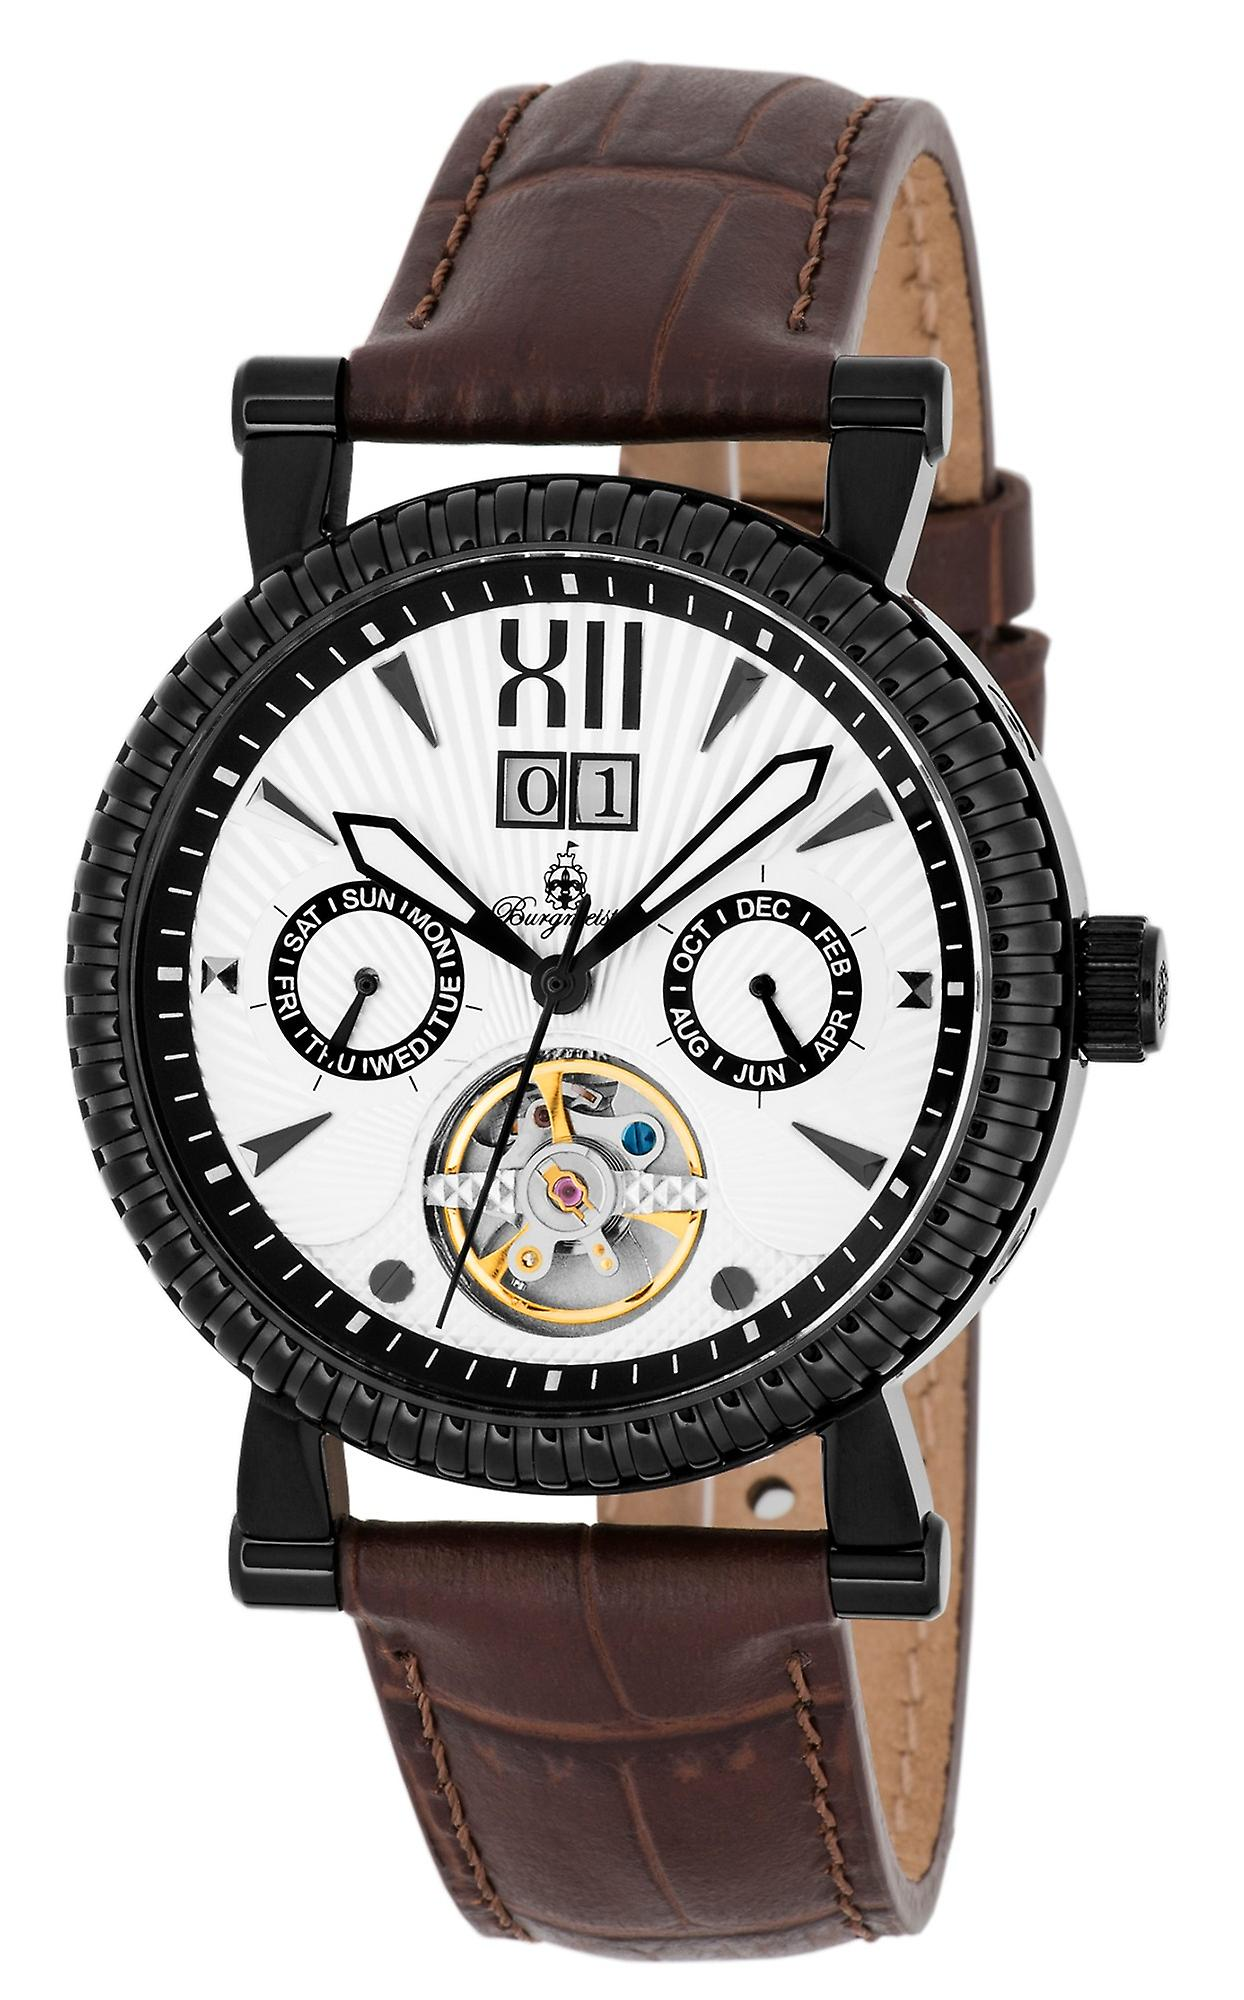 Burgmeister BM347-615 Stamford, Gents automatic watch, Analogue display - Water resistant, Stylish leather strap, Classic men's watch